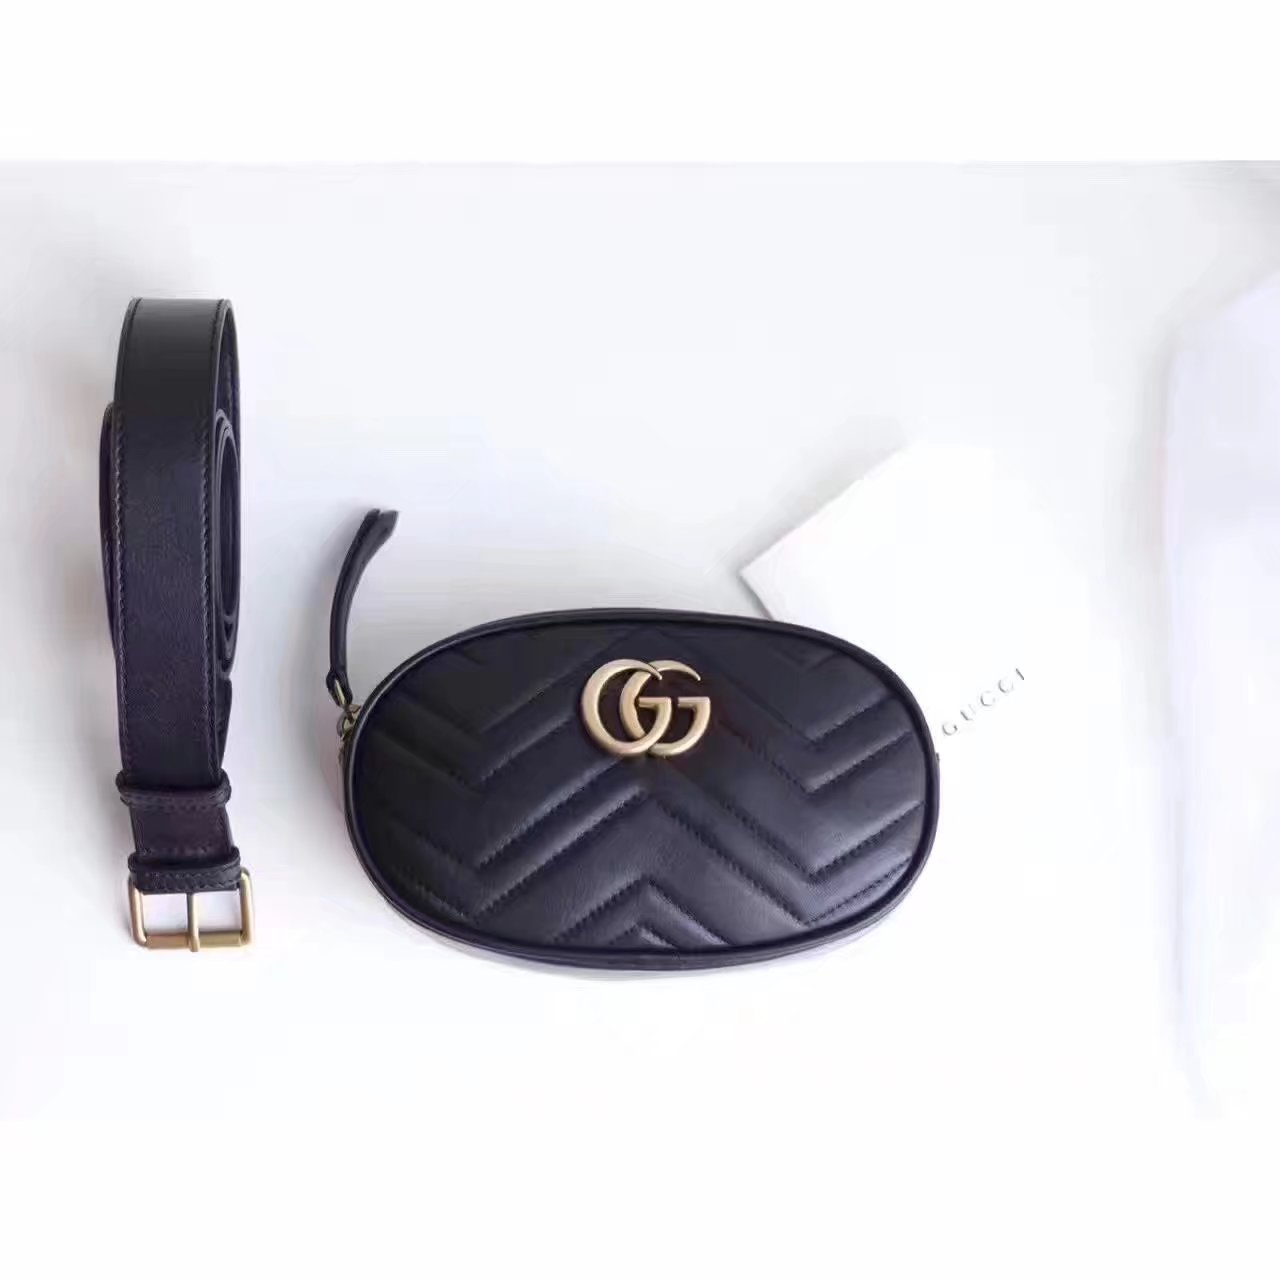 Gucci 476434 GG Marmont Matelassé Leather Belt Bag Black